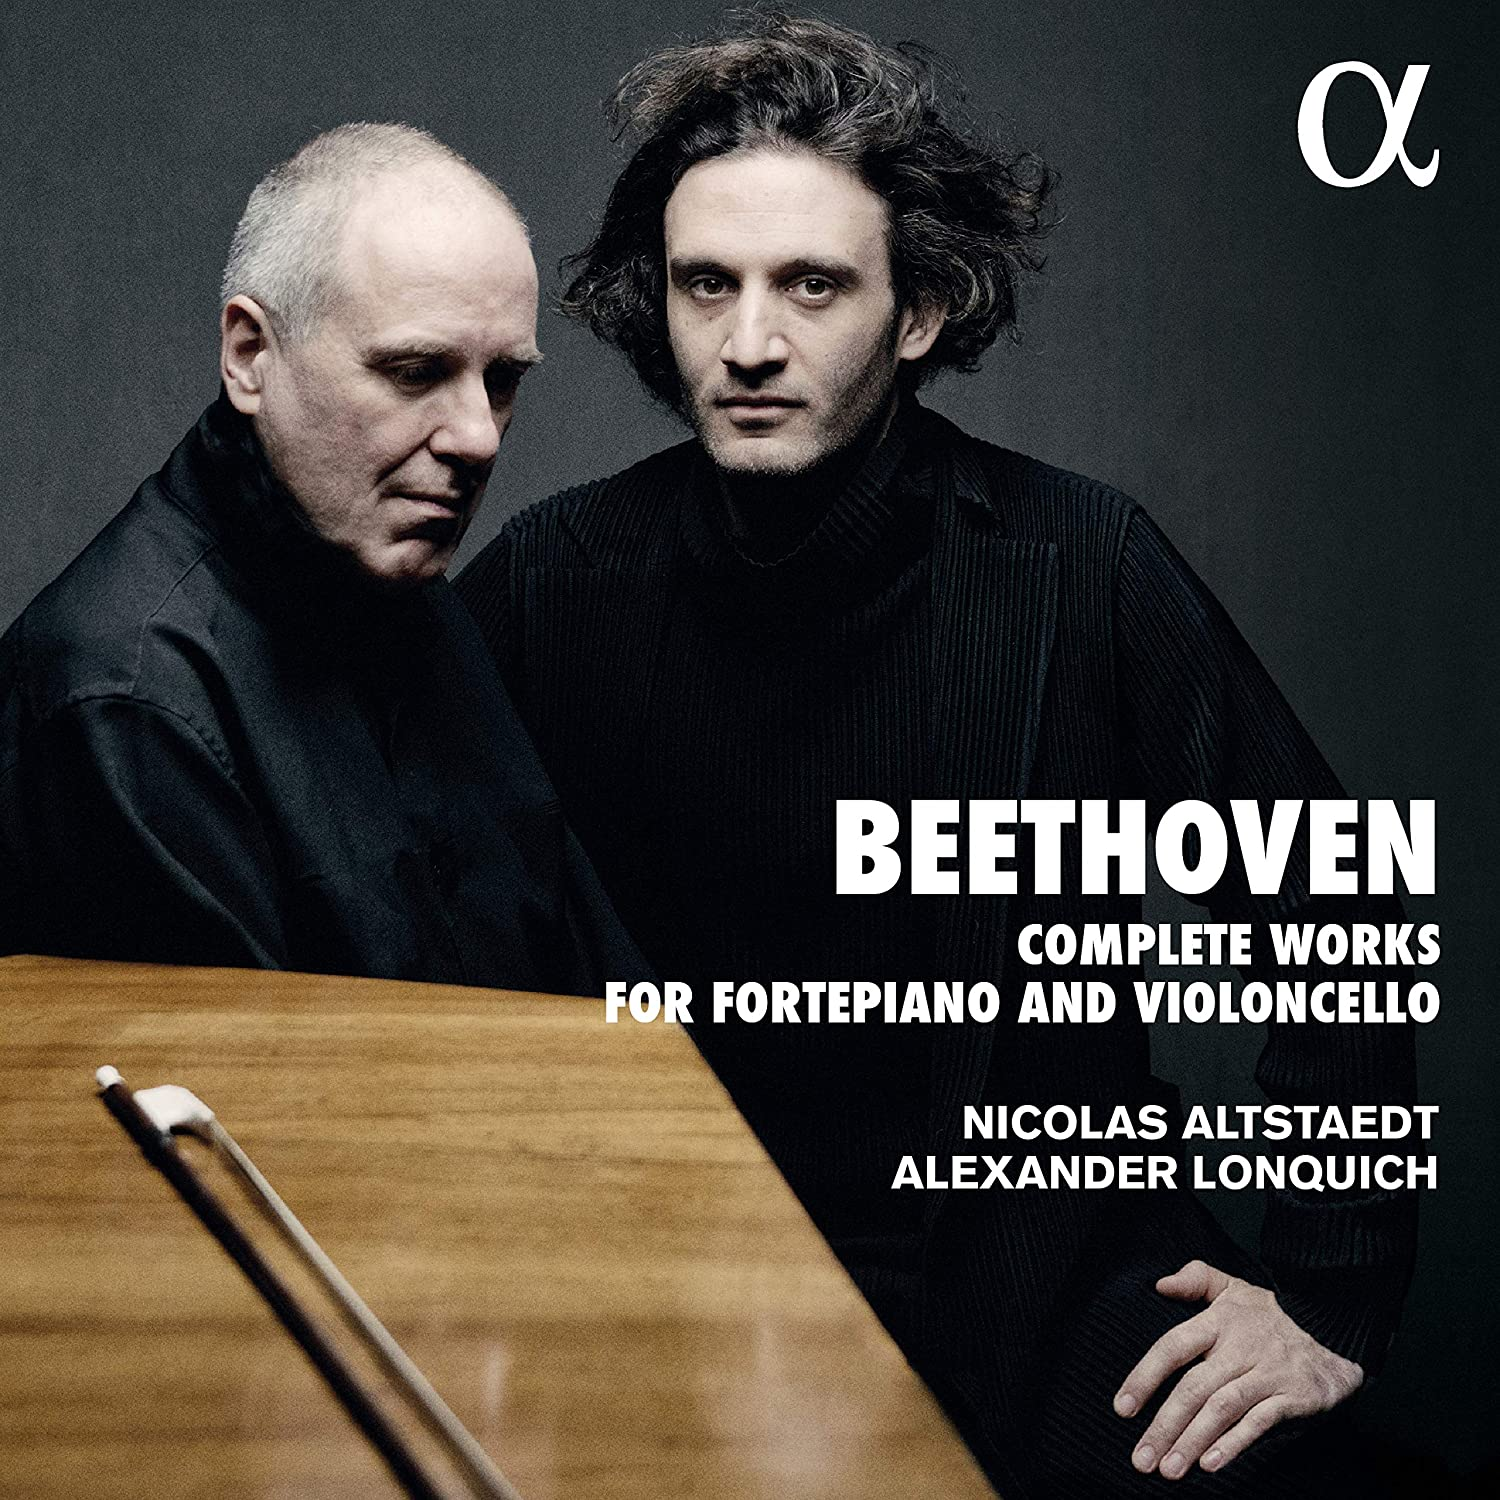 Review of BEETHOVEN Complete Works for Fortepiano and Violoncello (Nicolas Altstaedt)